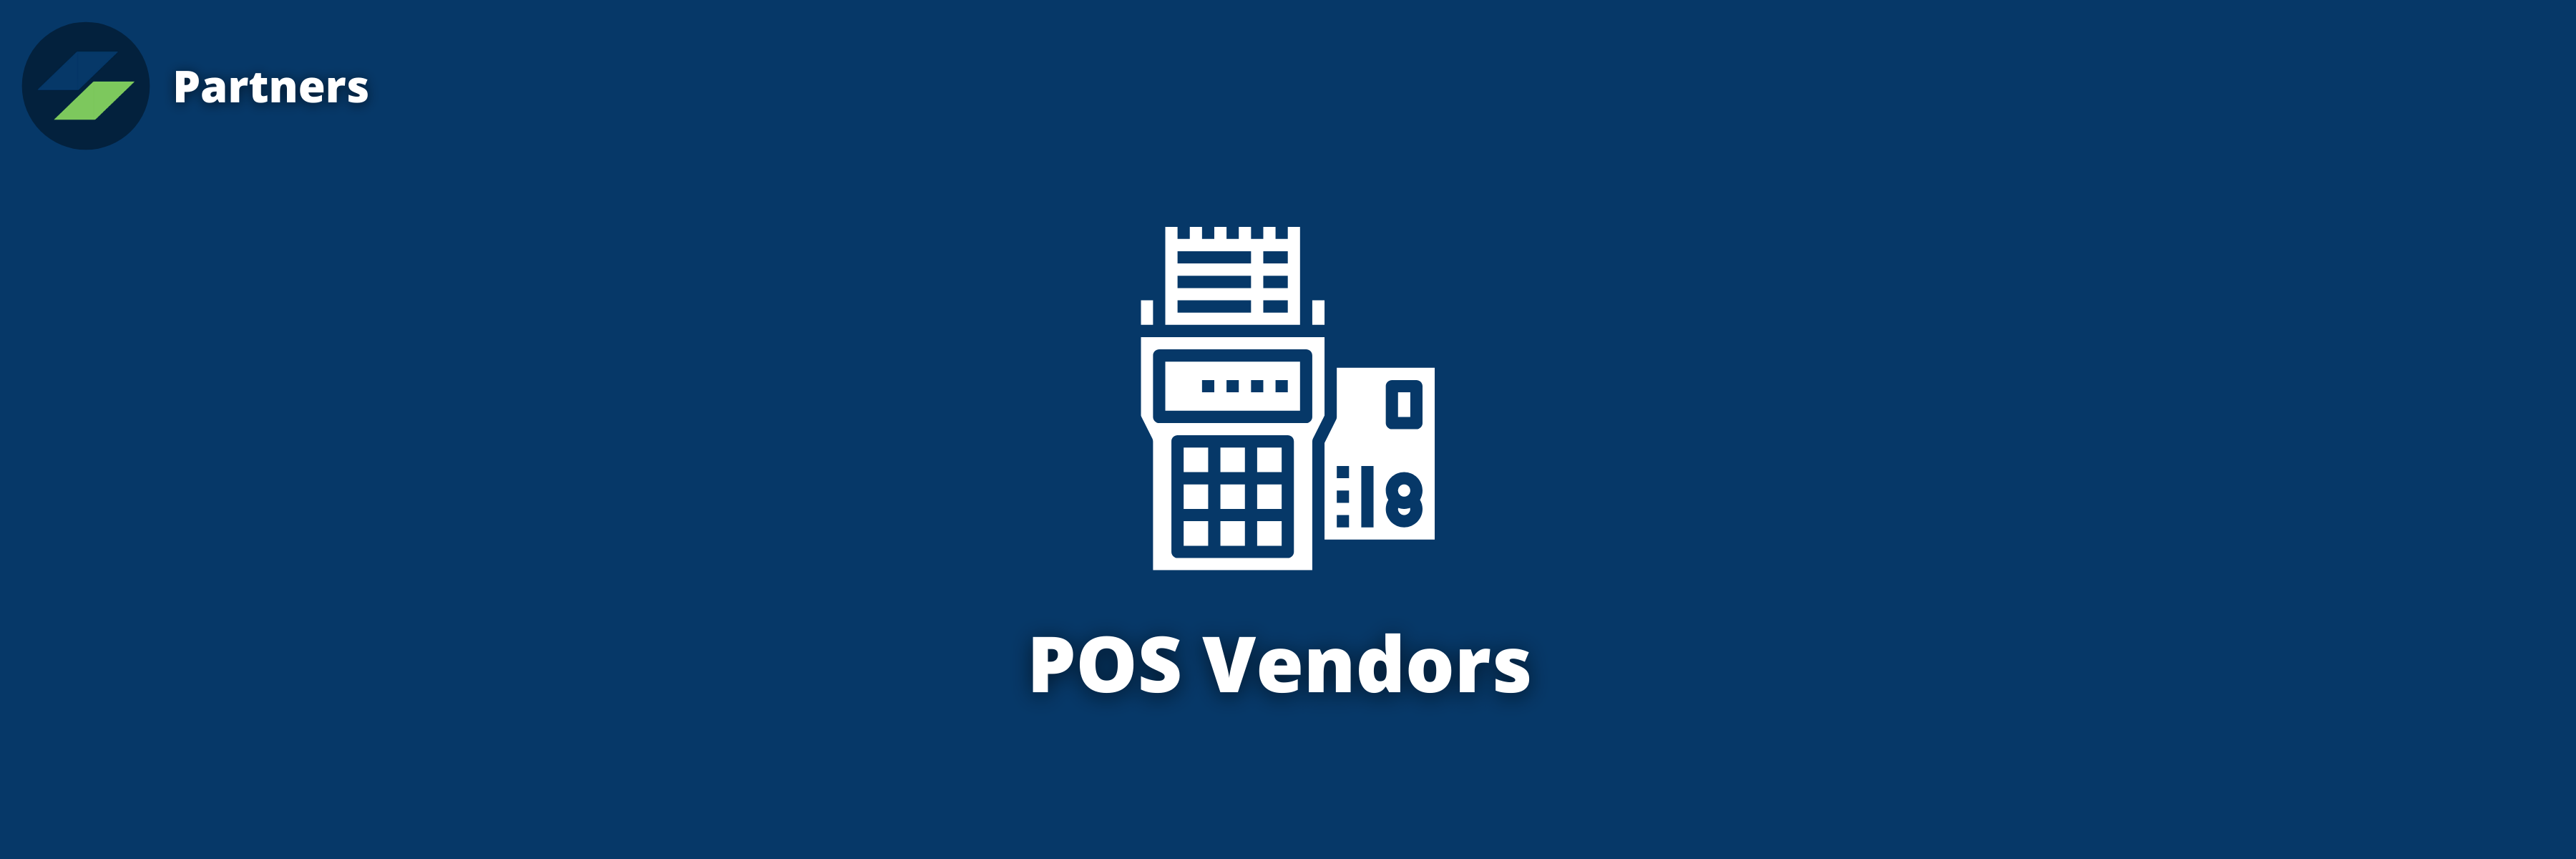 Plug'n Pay | POS Vendors